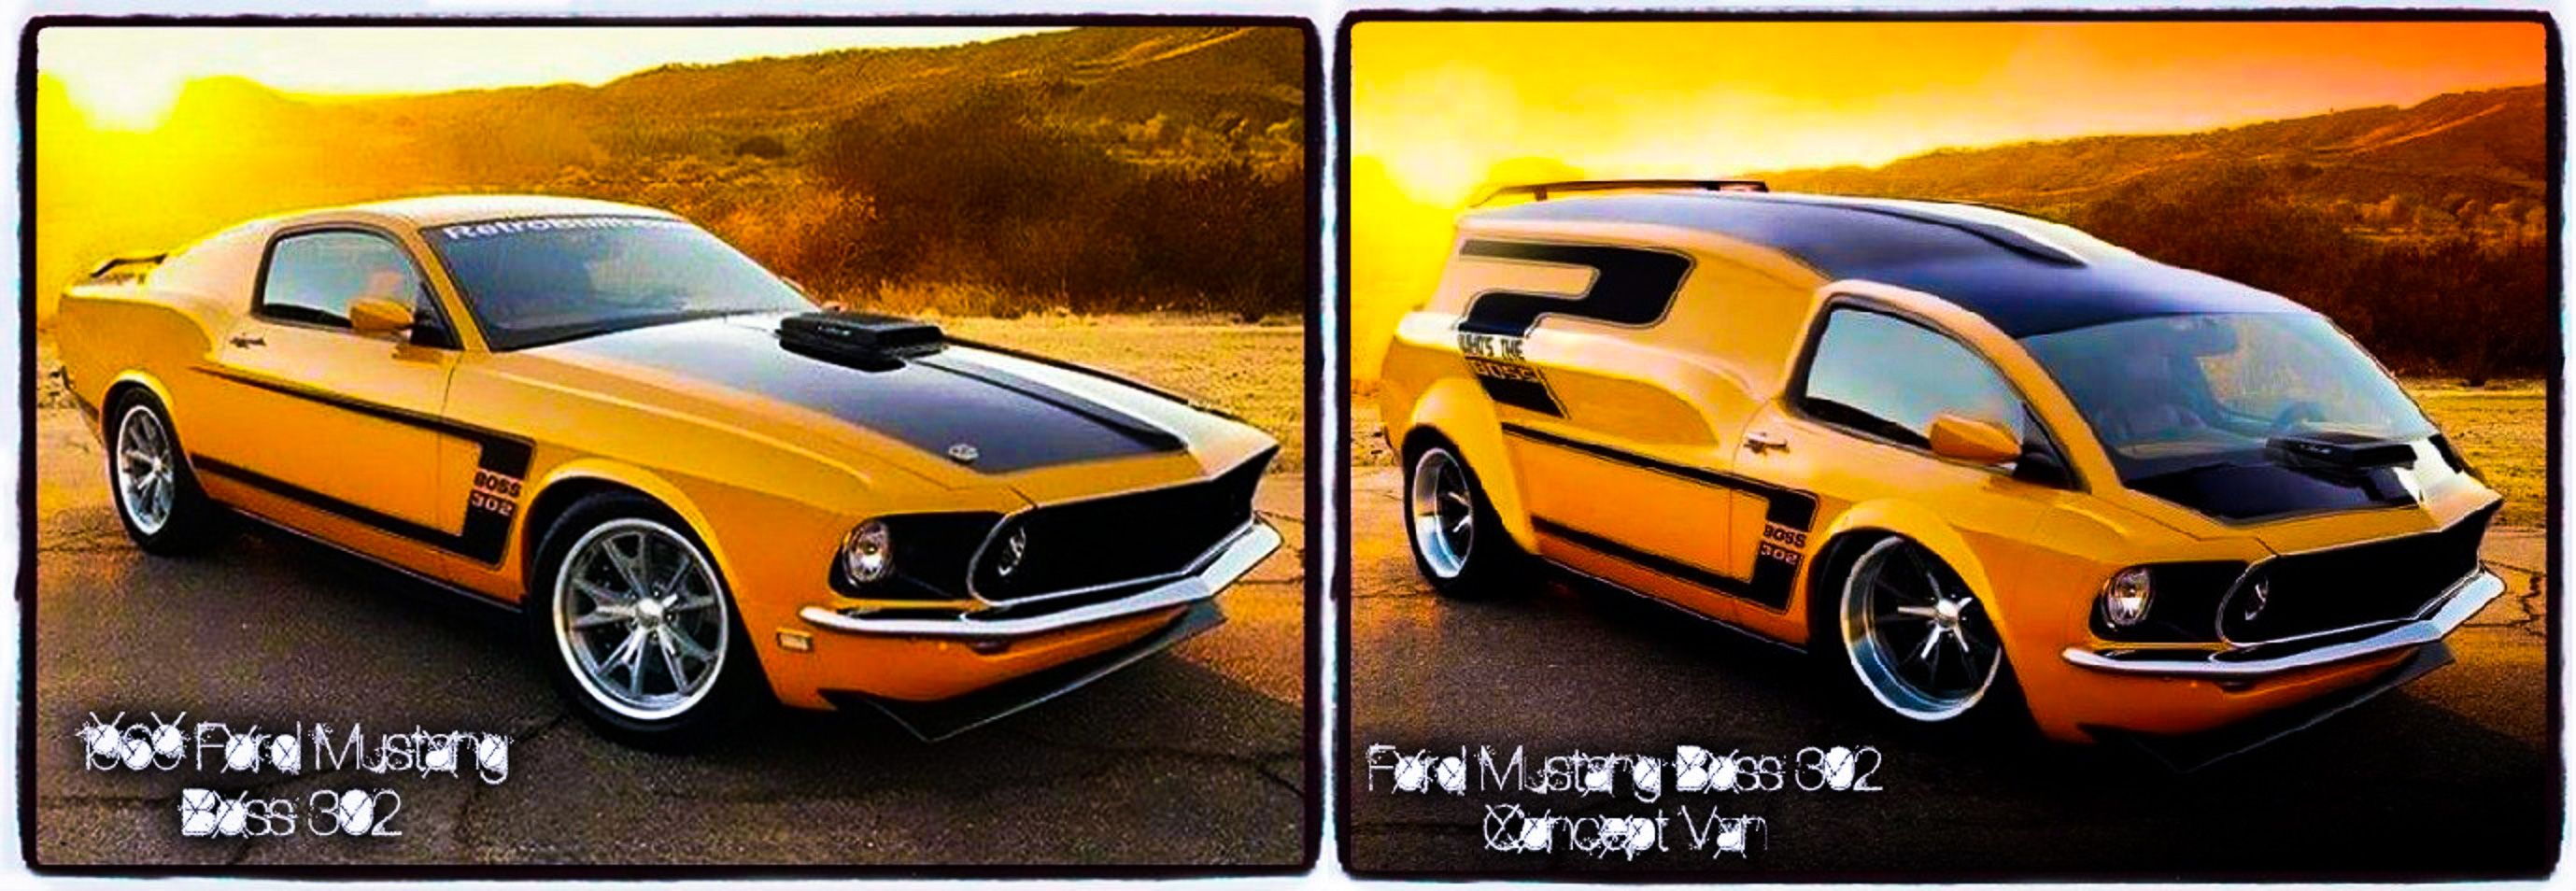 On the left a 1969 ford mustang boss 302 and on the right a photo shopped ford mustang boss 302 concept van